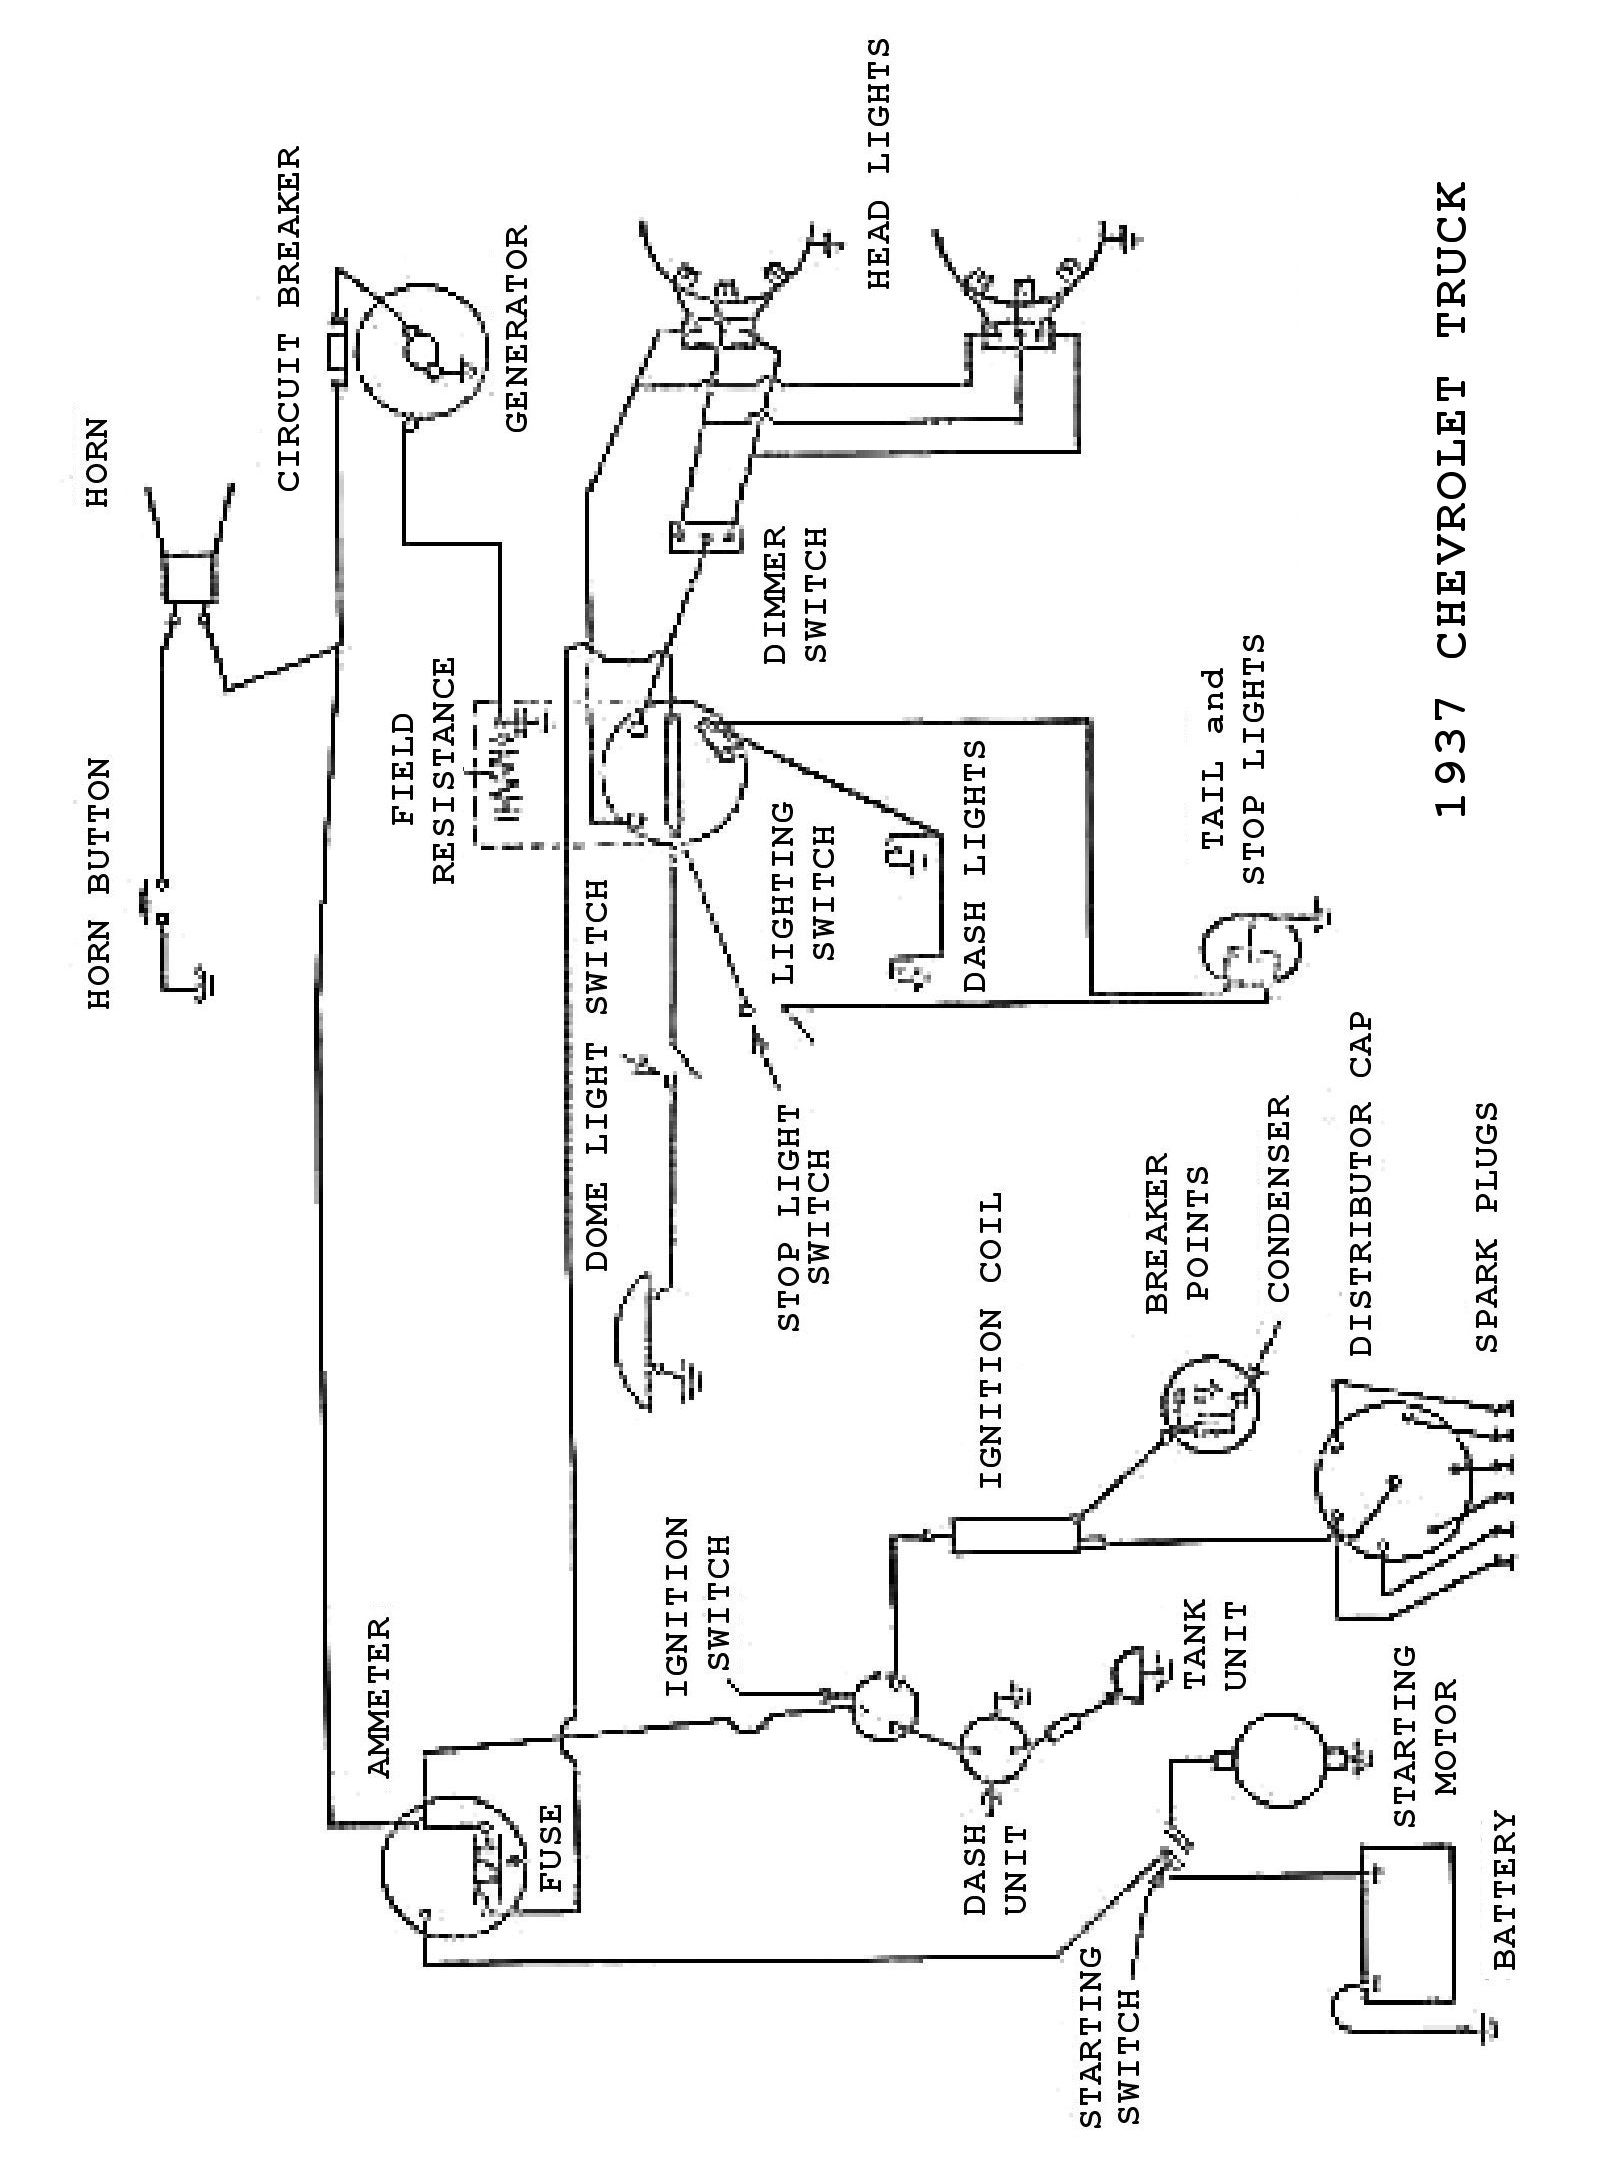 37truck wiring diagram for a 1937 chevy truck wiring diagram simonand 66 Chevy Headlight Switch Wiring Diagram at pacquiaovsvargaslive.co